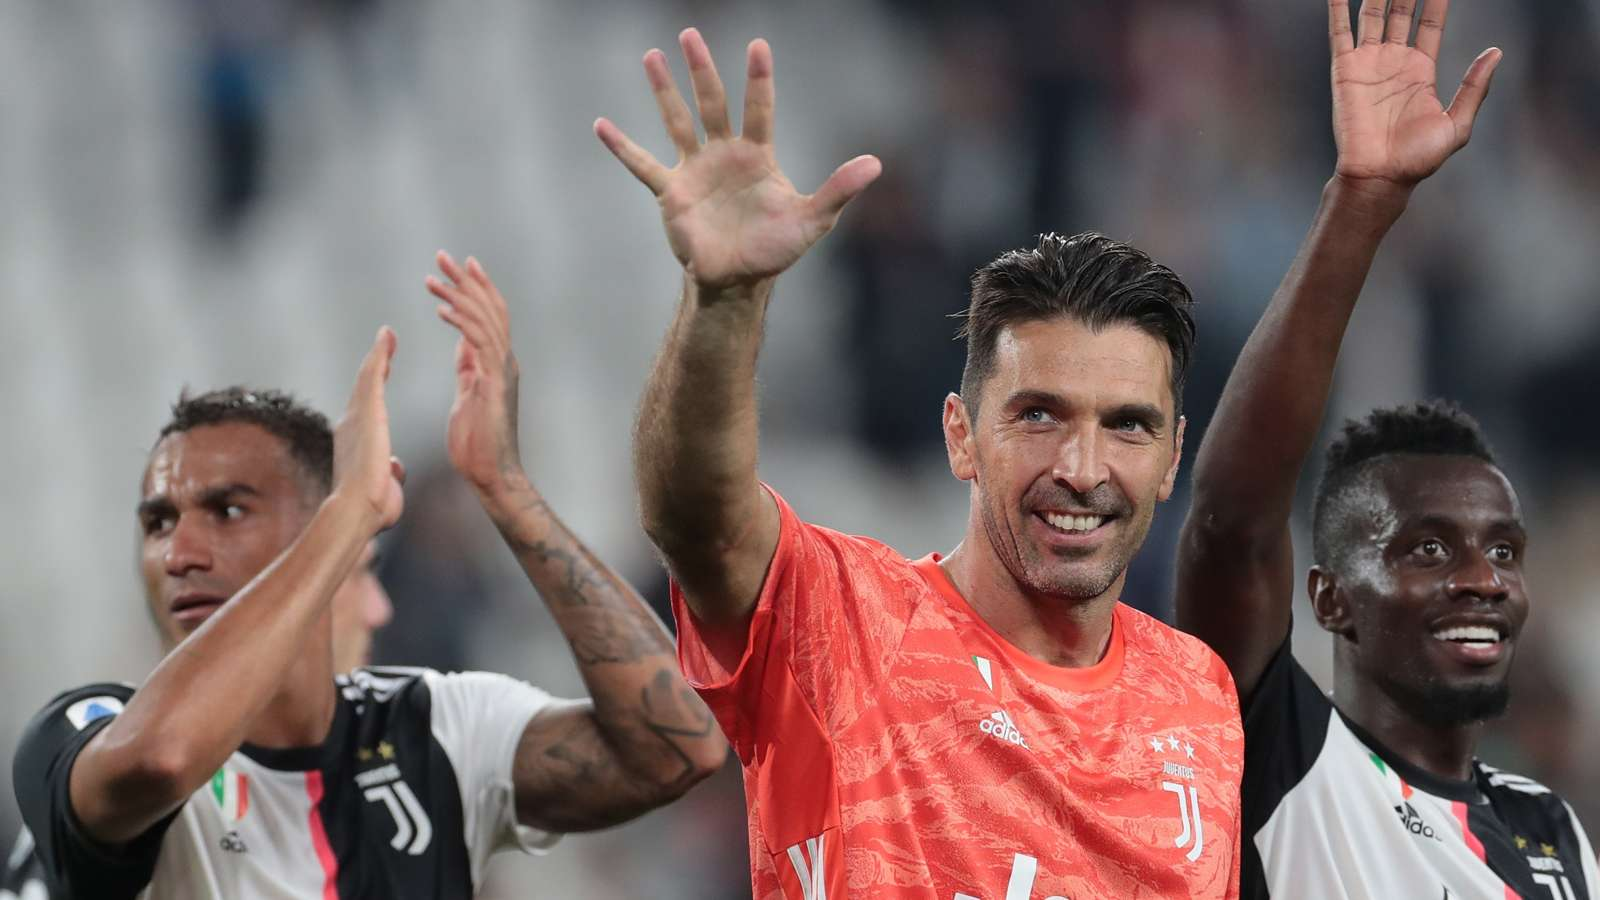 Juventus star Buffon 'very proud' after breaking Maldini's games record - Bóng Đá